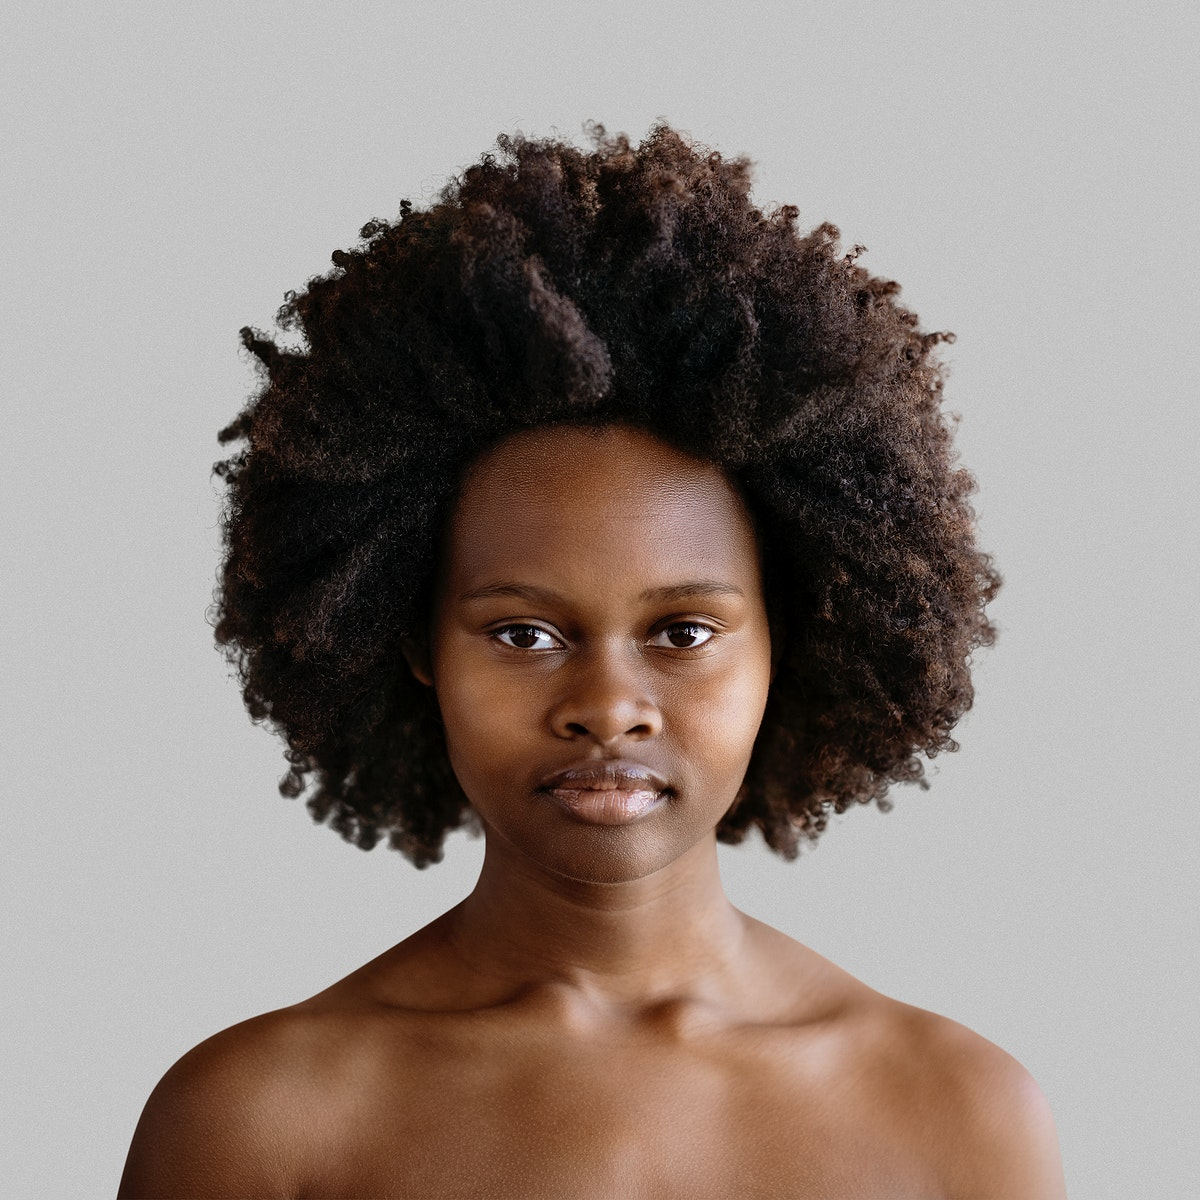 Black afro women nude Beautiful Naked Black Woman With Afro Hair Royalty Free Stock Photo High Resolution Image